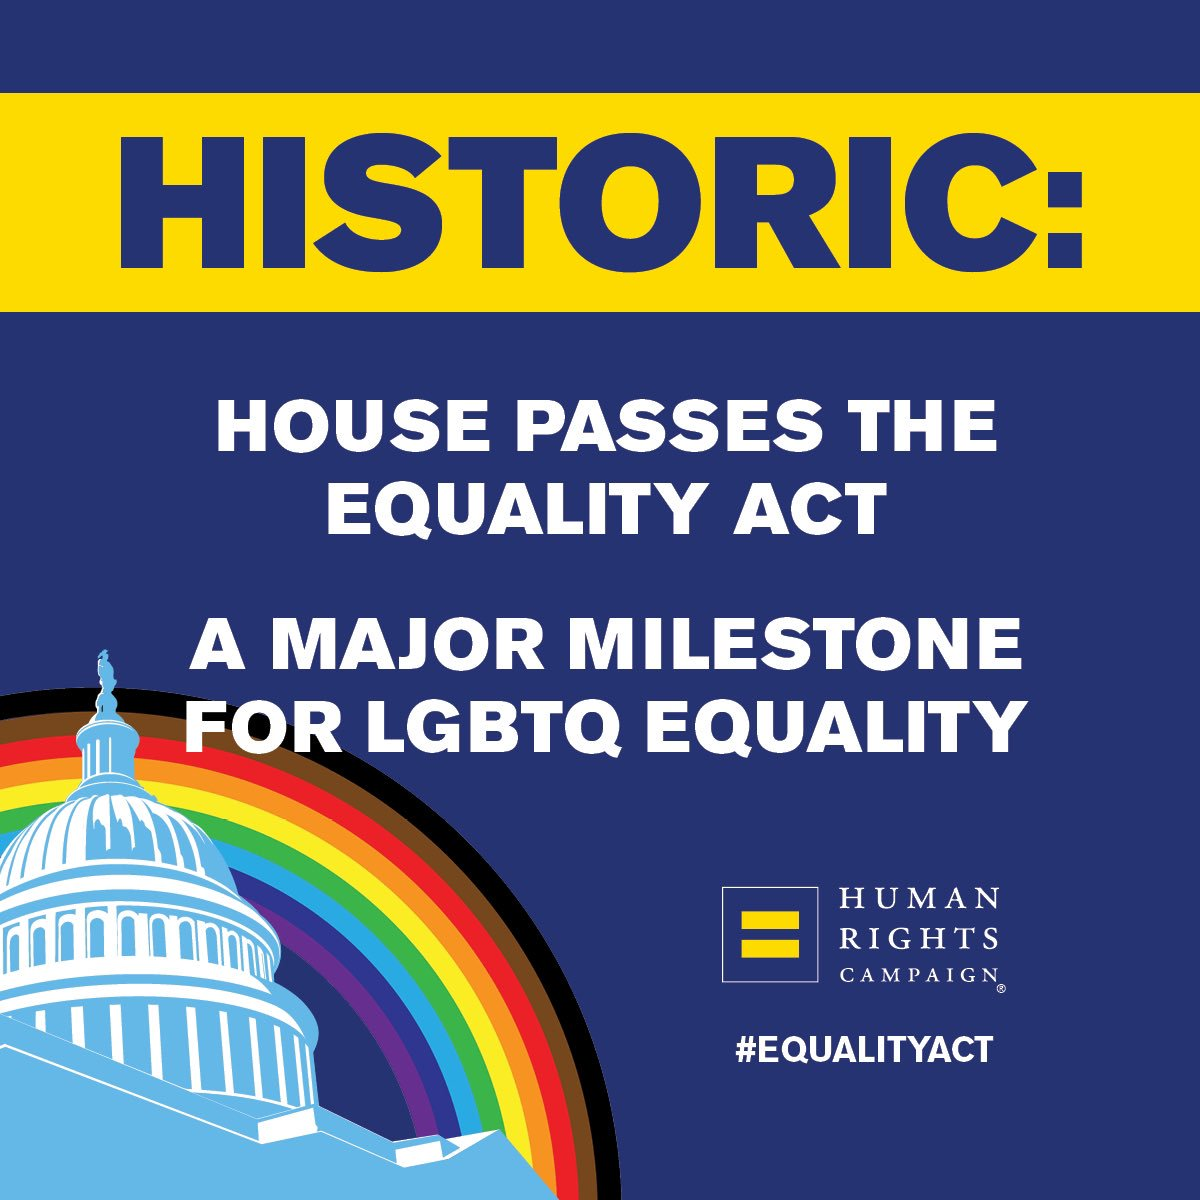 LGBTQ people like me are still at risk of being... ❌fired ❌evicted ❌denied services ...because of who we are. With House passage, it's time for @senatemajldr to call a vote on the #EqualityAct and protect LGBTQ people from discrimination. hrc.org/EqualityAct